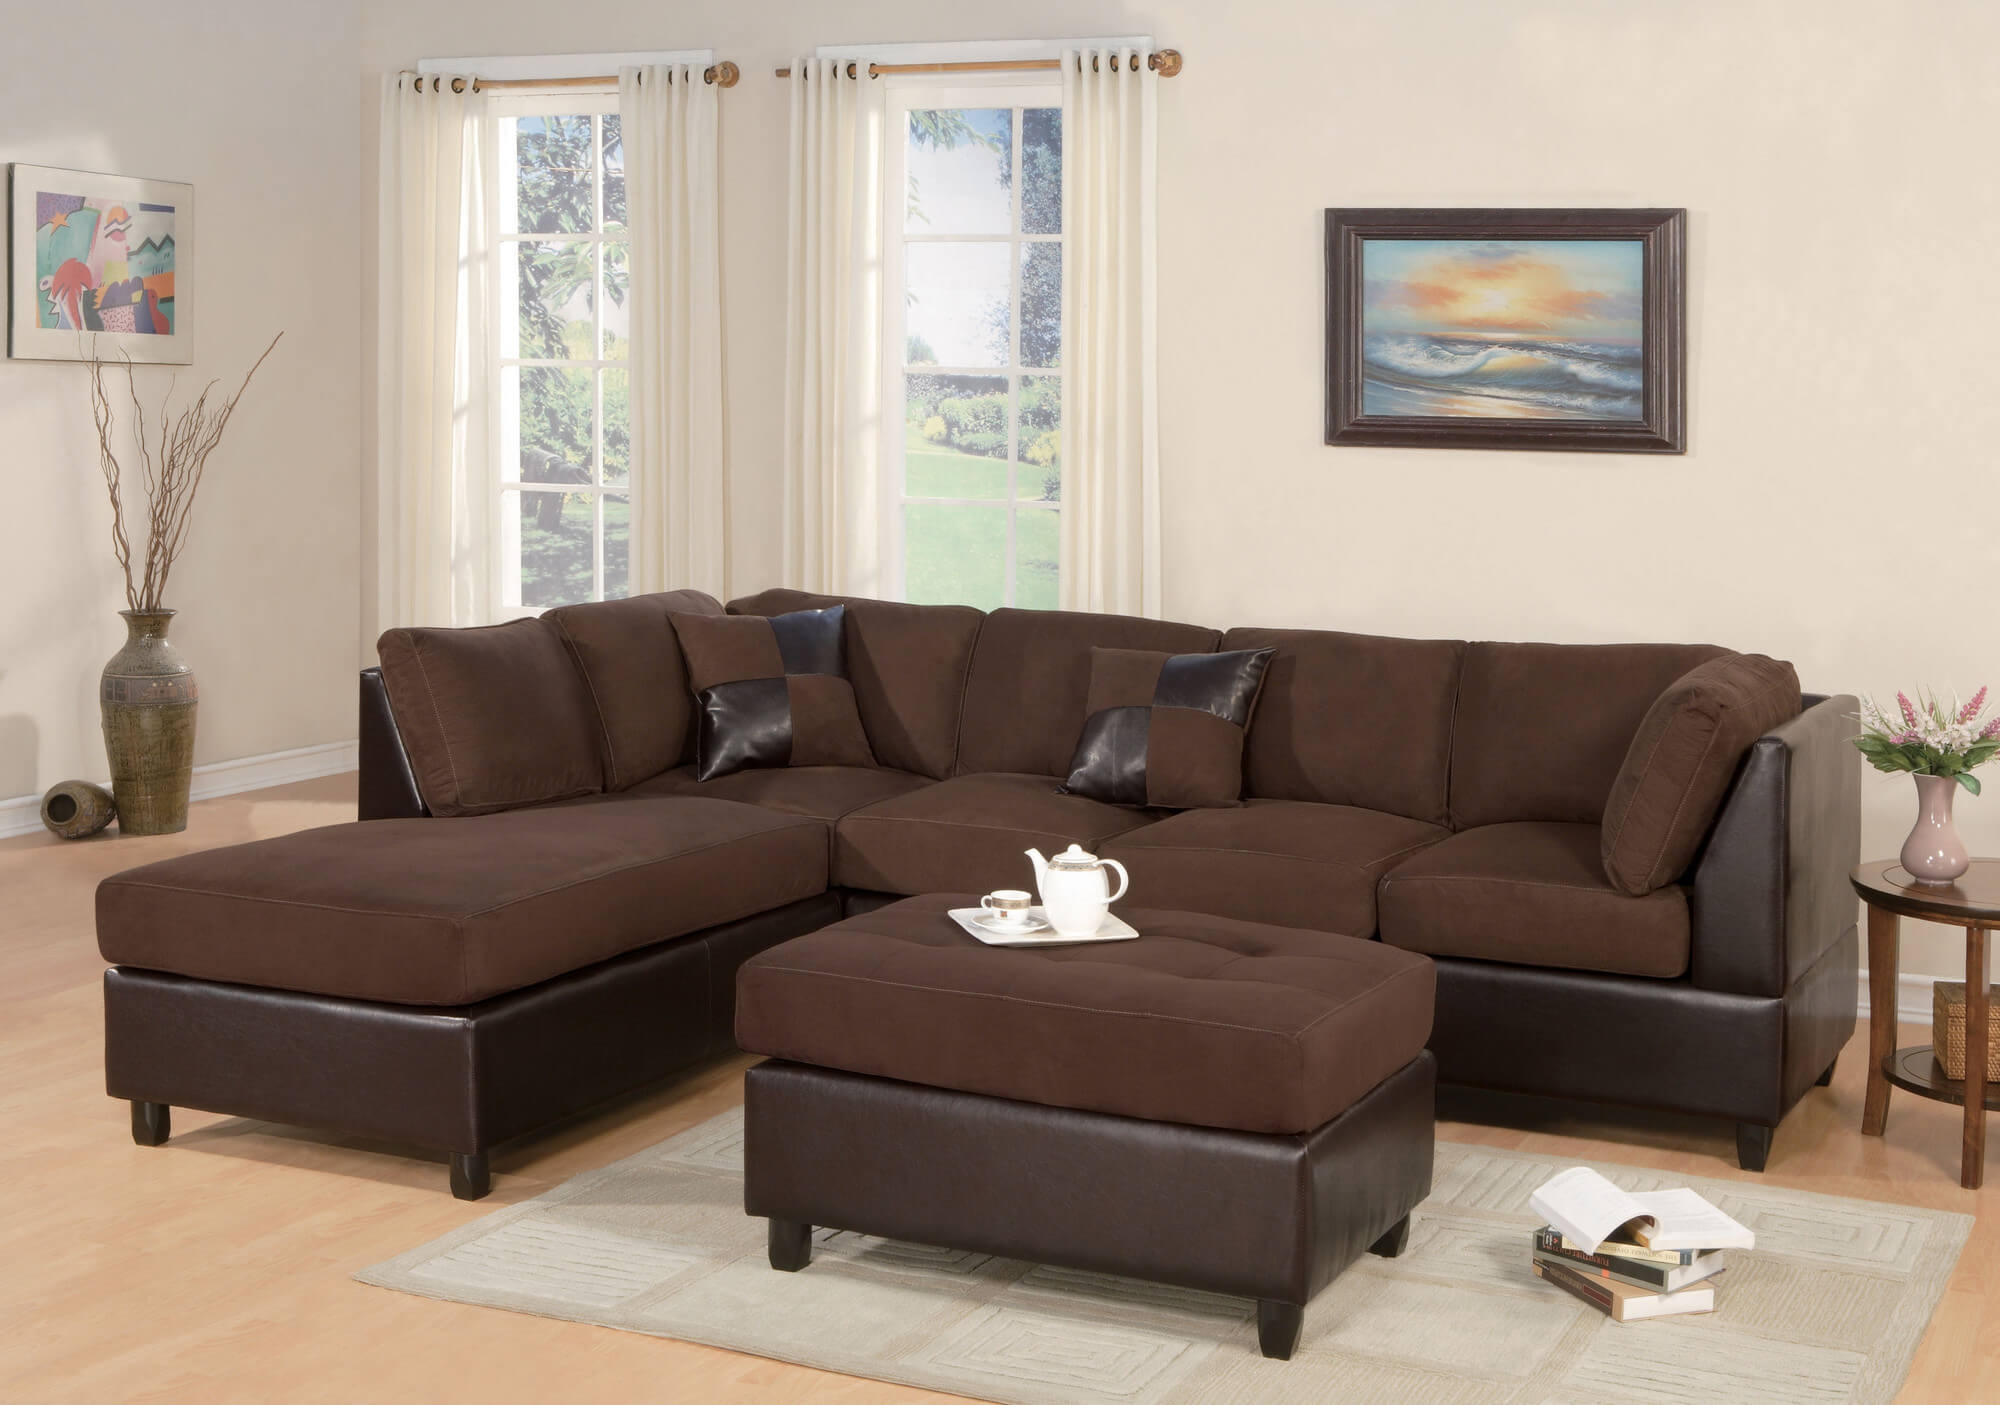 100 Beautiful Sectional Sofas Under 1000 Inside Chocolate Brown Sectional Sofa (View 7 of 15)